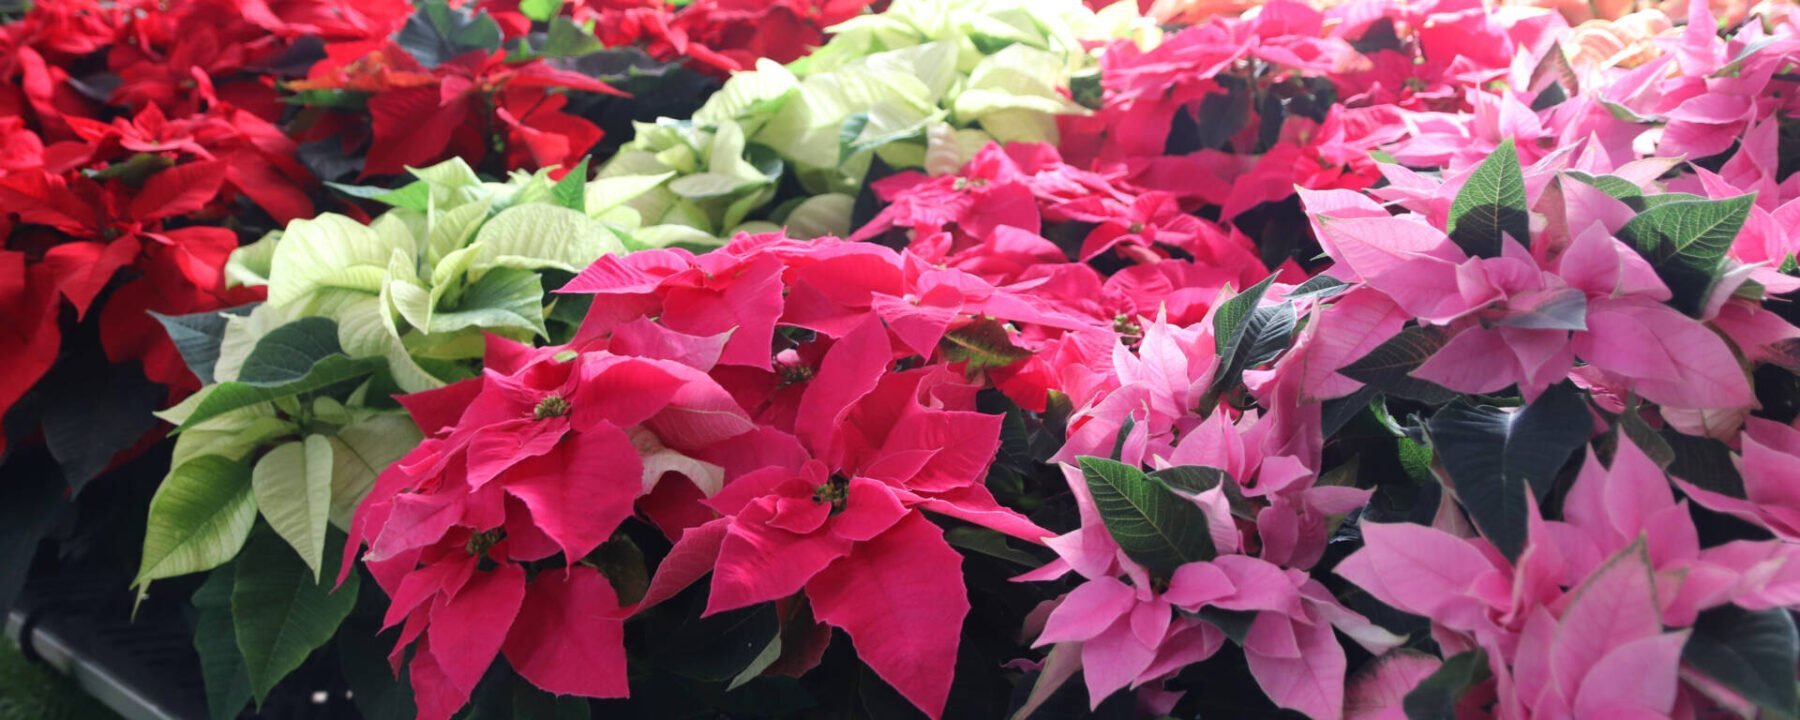 Party Poinsettias at Flowerland